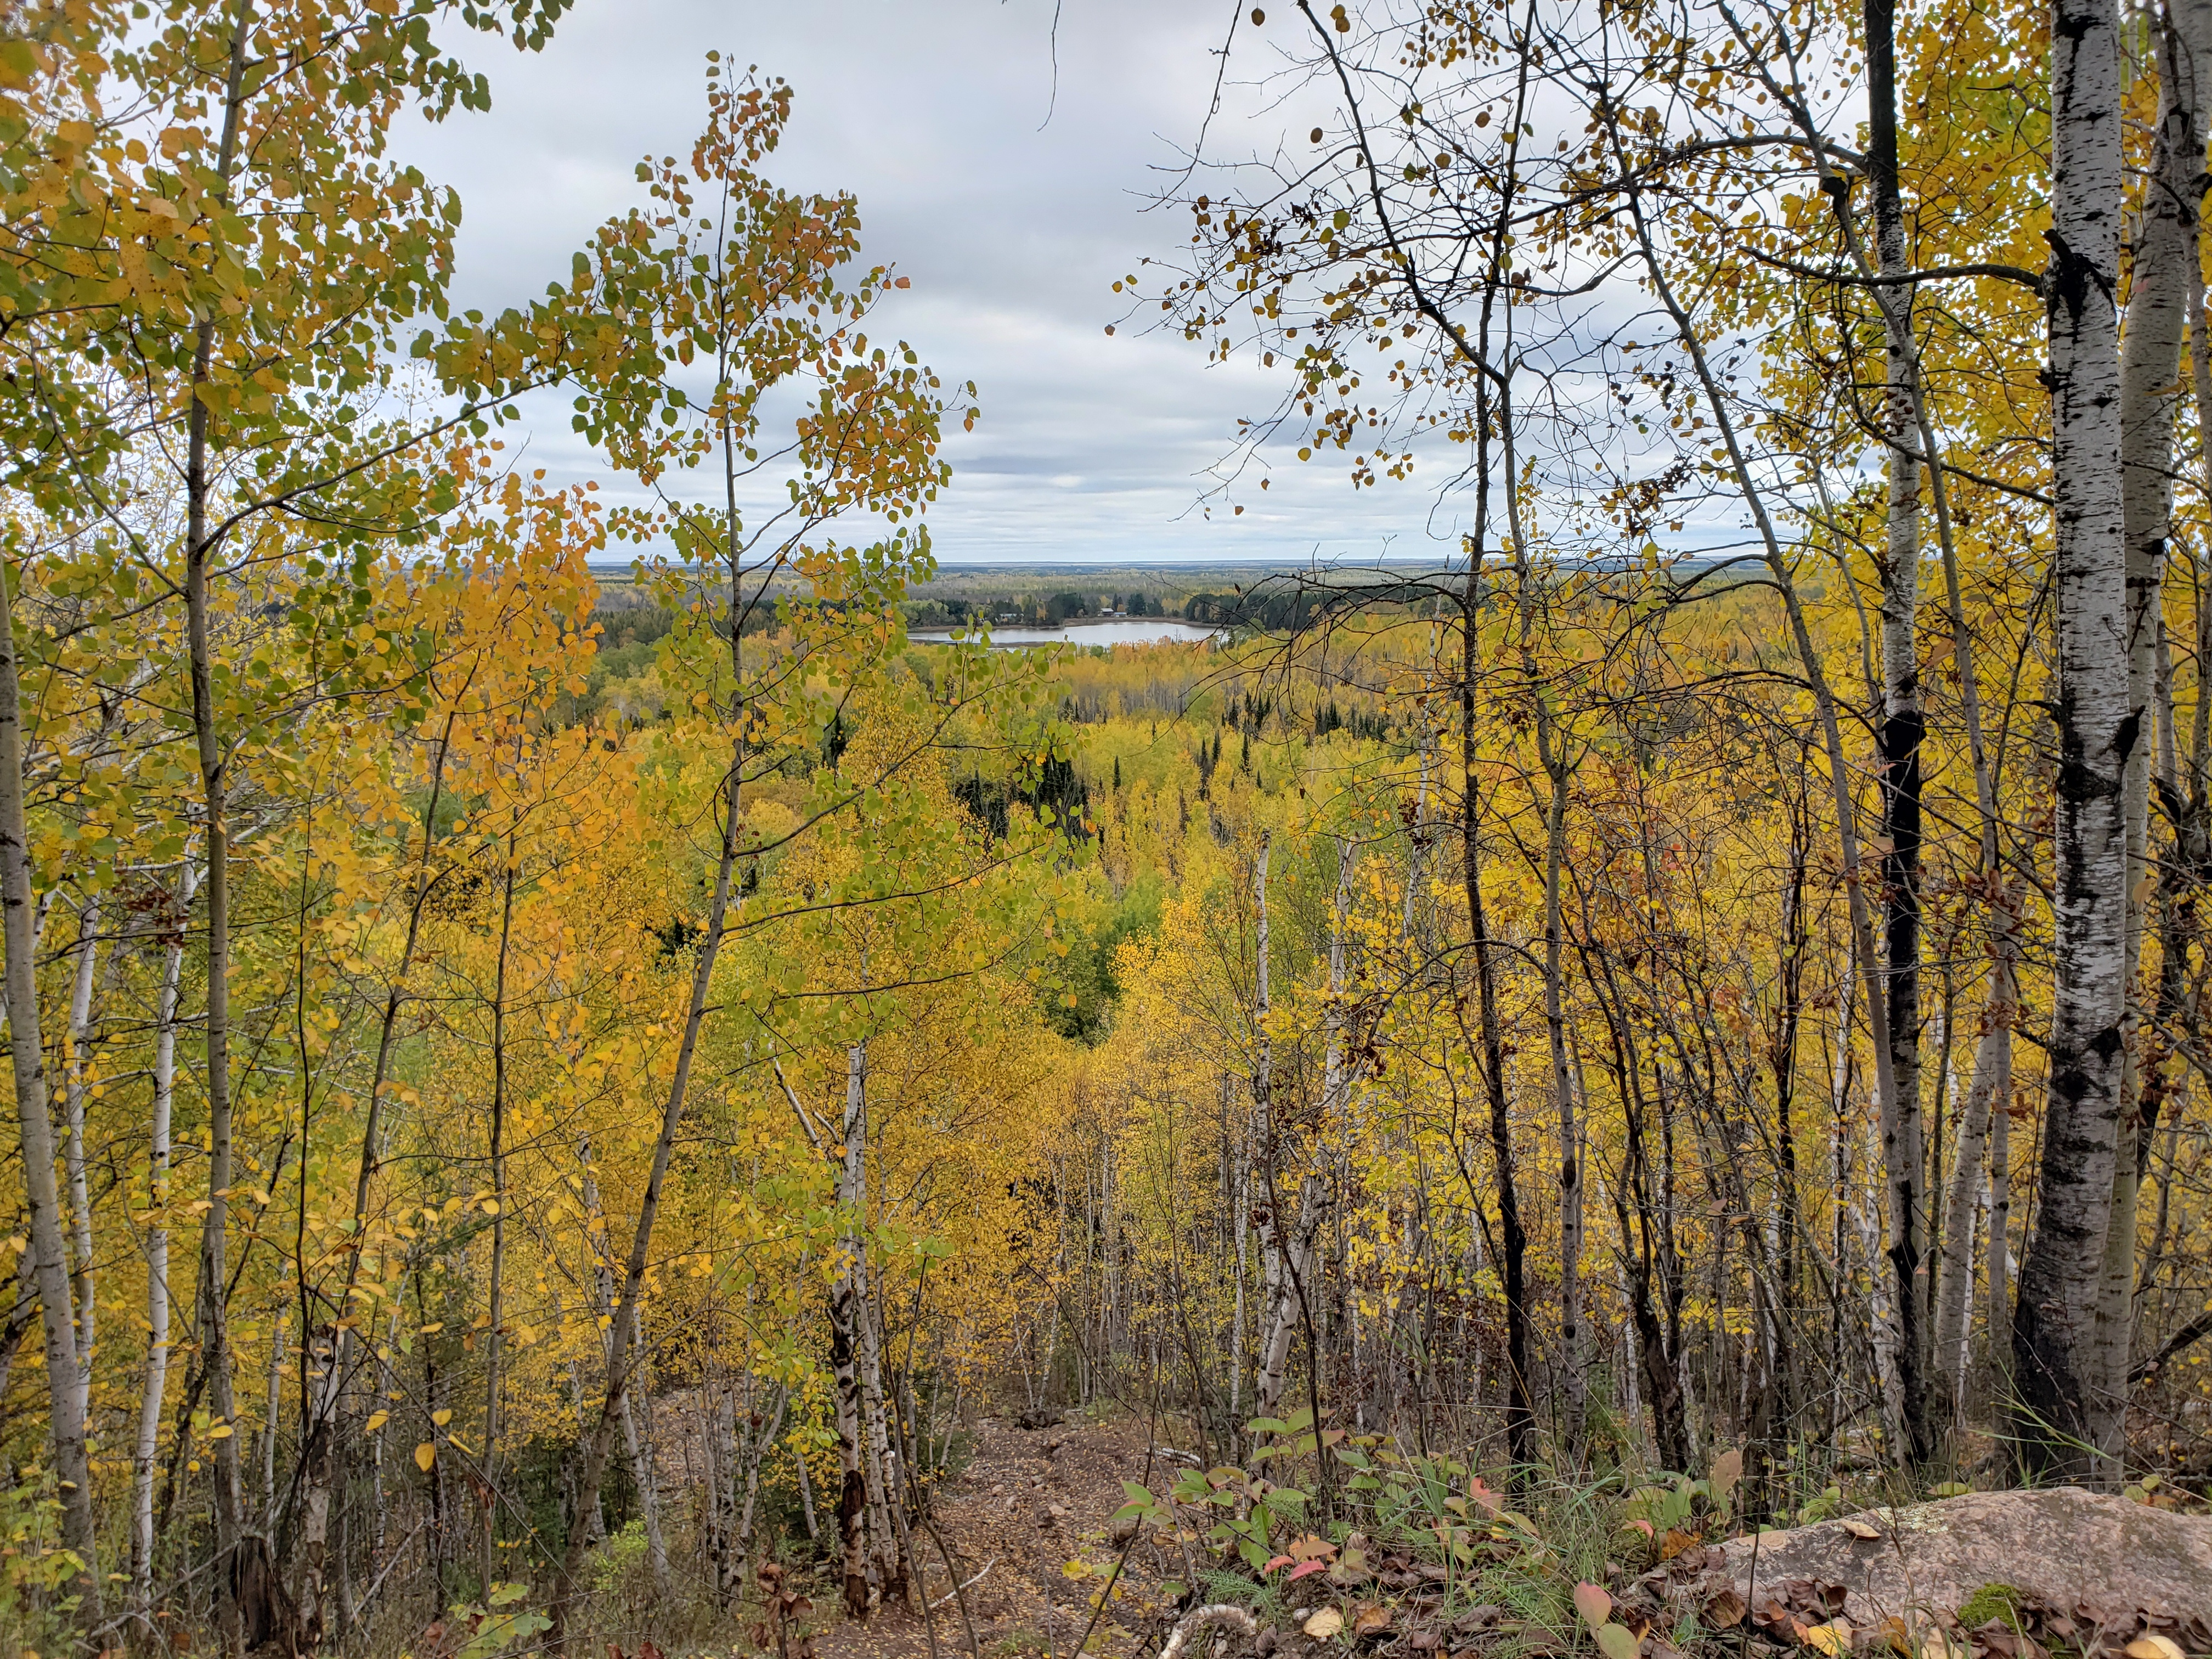 Overlook of trees that go to the horizon. Pine trees dot the yellow fall leaves, a lake can be seen in the distance.